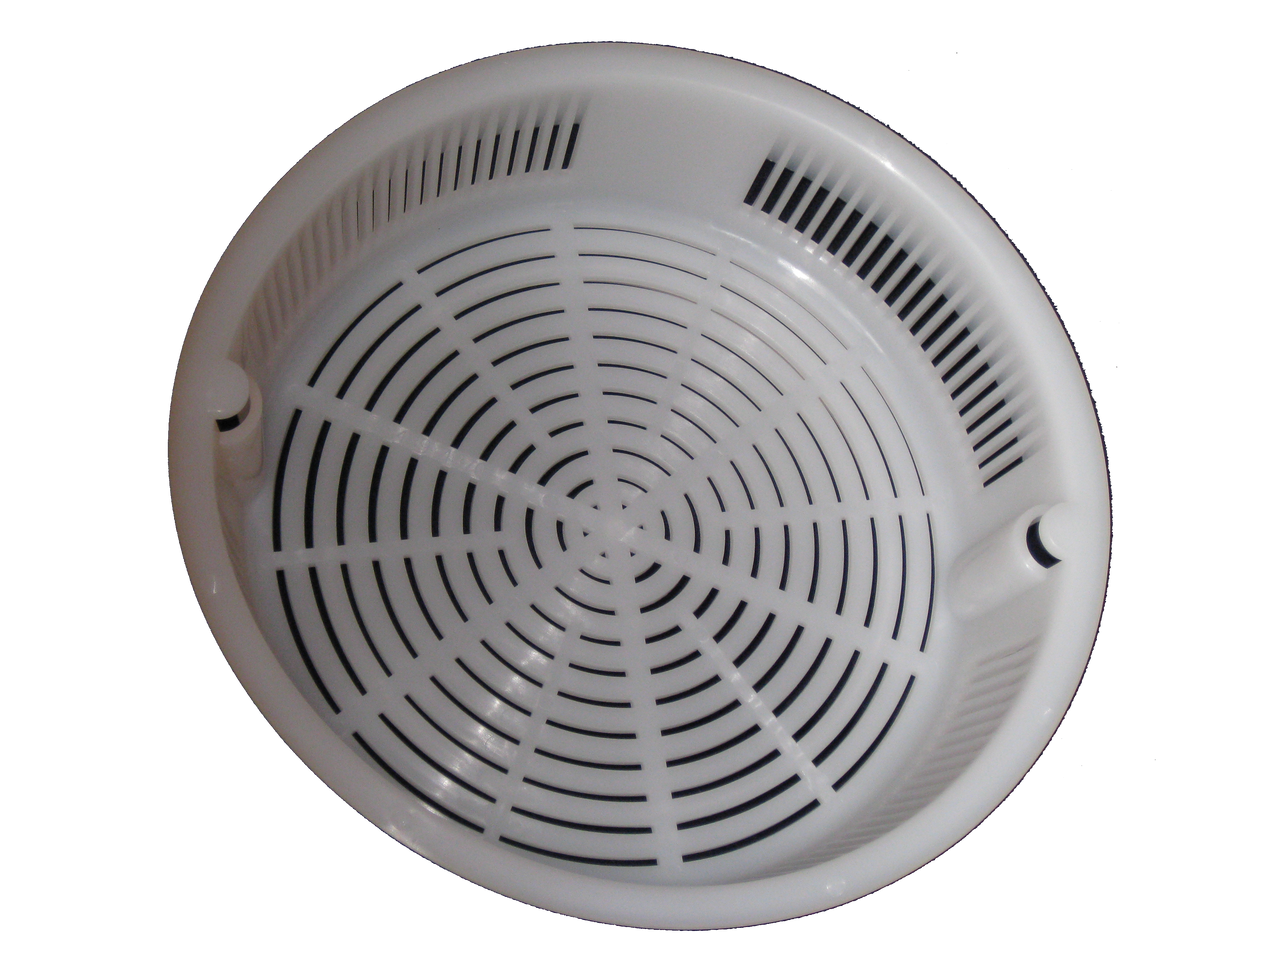 Round Floor Sink Strainer Basket 9.5""